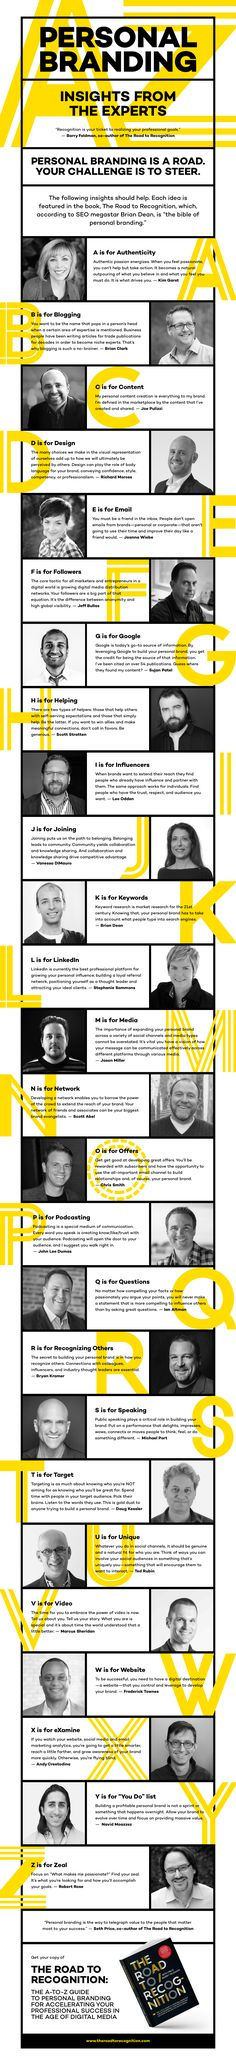 Personal Branding: Tips from 28 Experts - #Infographic